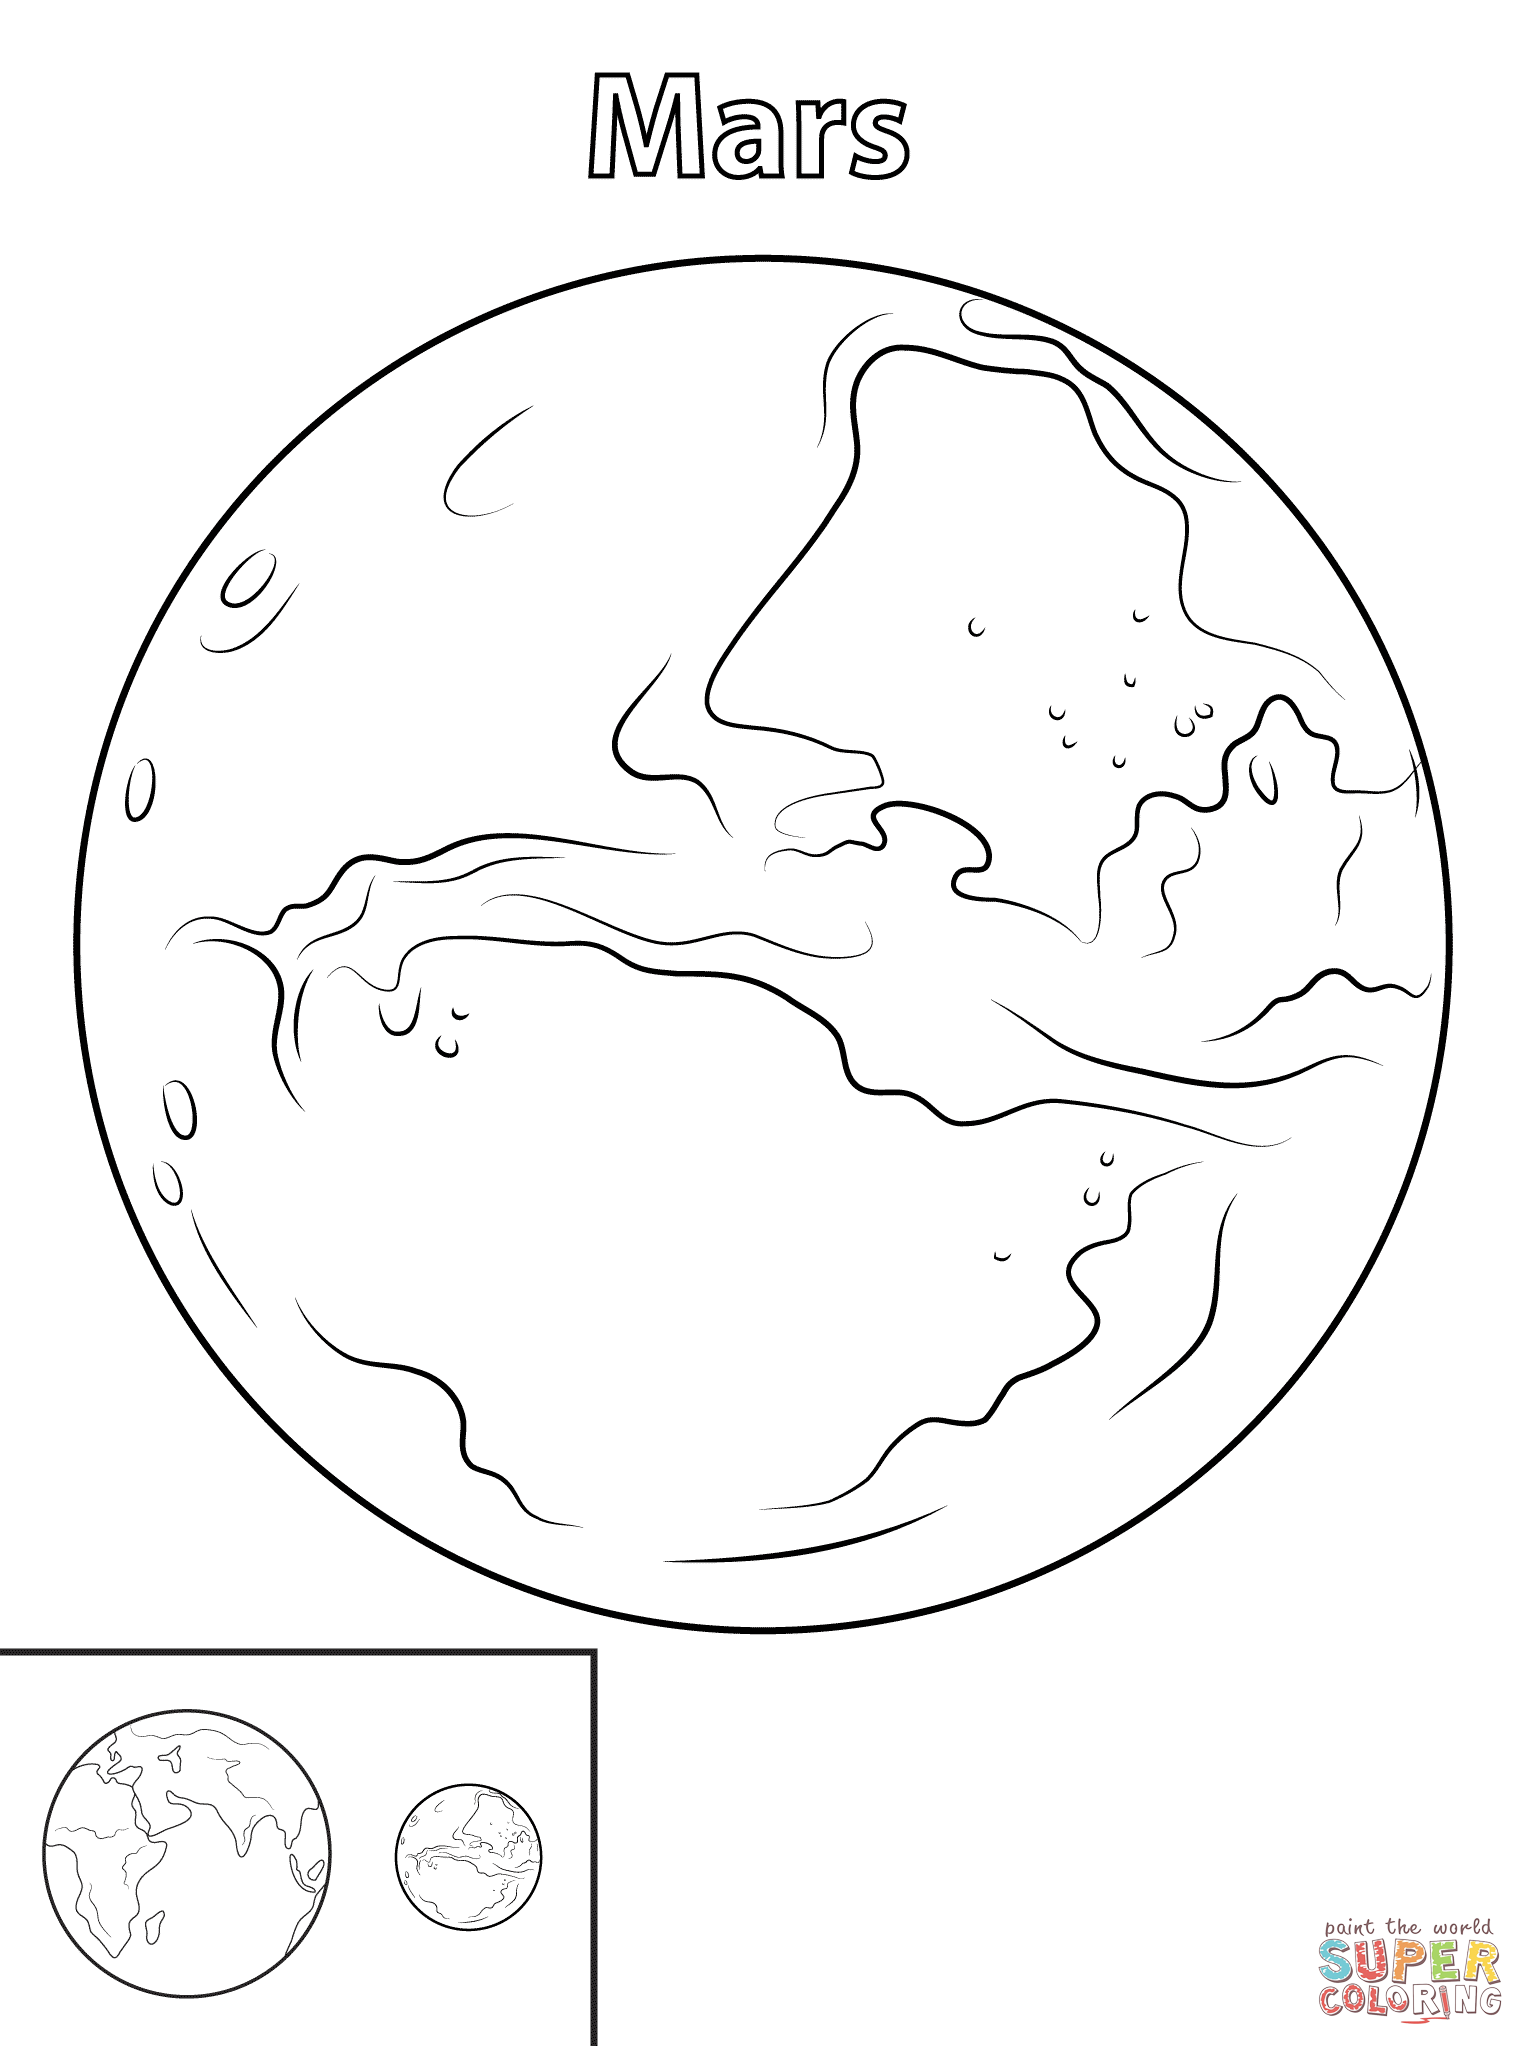 Mars Planet Coloring Page